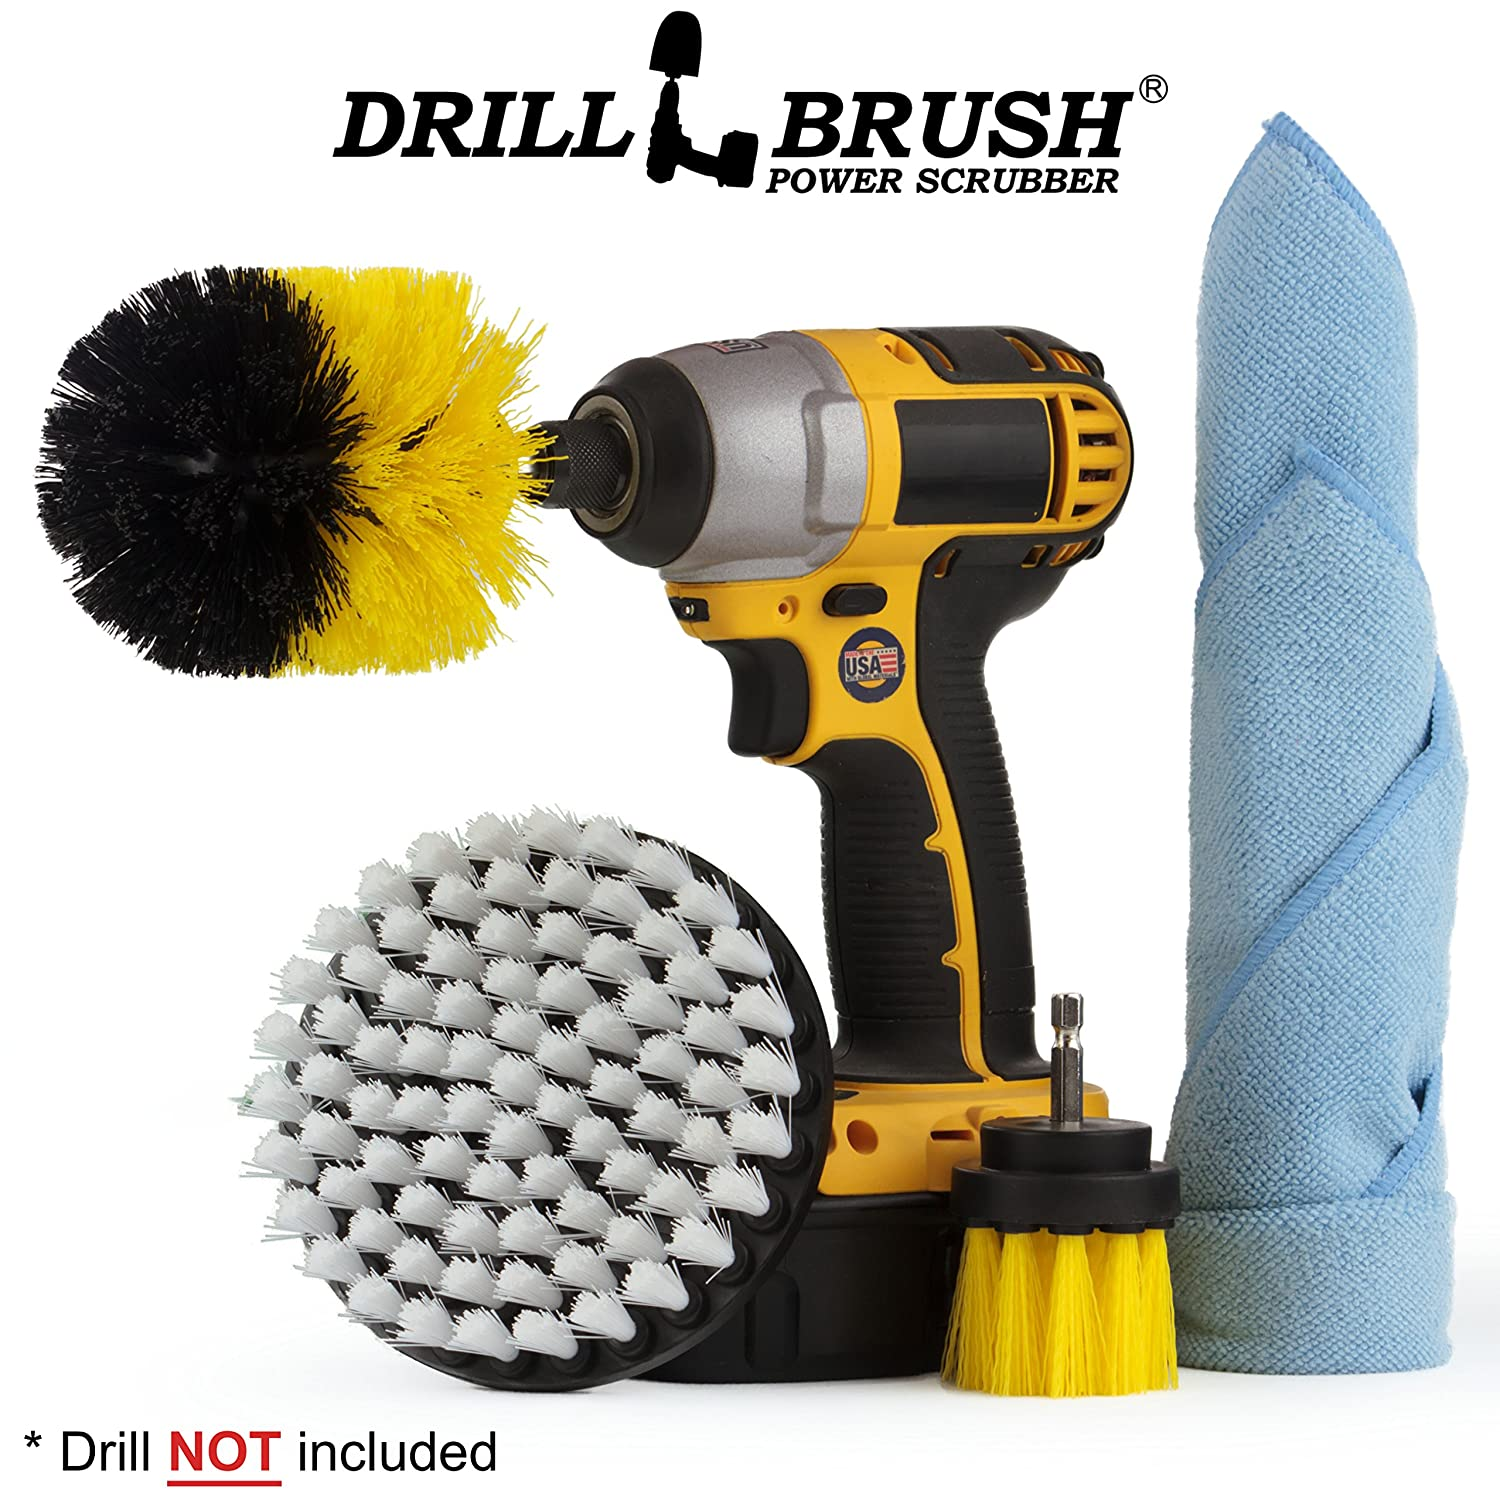 Cleaning - Bathroom Accessories - Drill Brush - Shower Cleaner - Shower Curtain - Shower Door - Shower Curtain - Bathtub - Cast Iron - Bath Mat - Tile - Grout Cleaner - Microfiber Cleaning Cloth Drillbrush